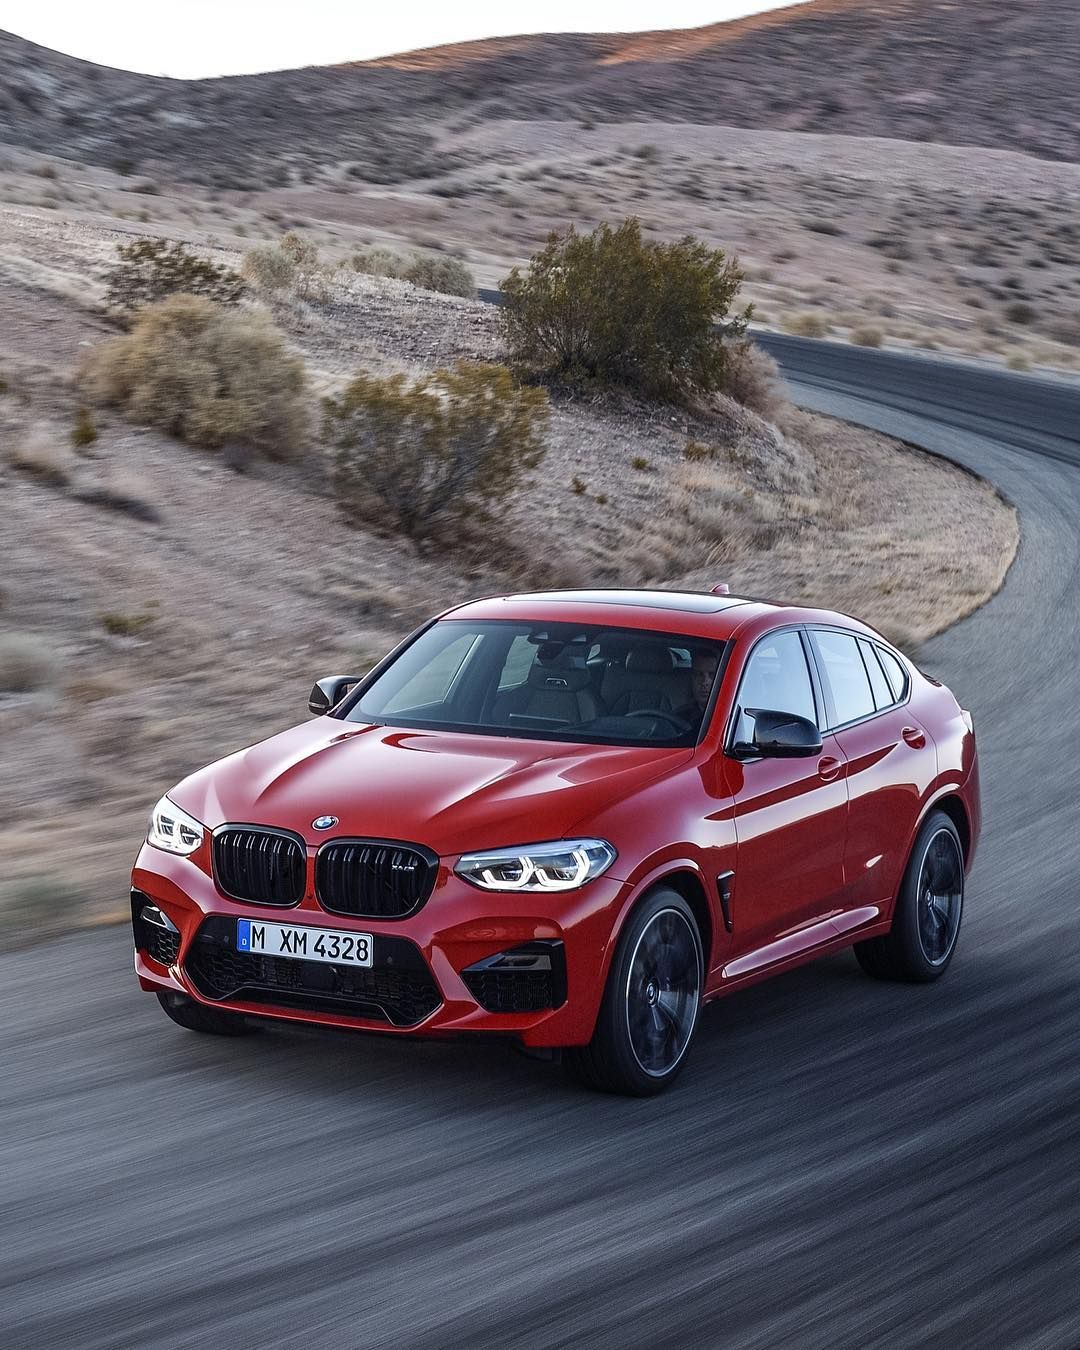 Bmw Revealed The 2020 X4 M And For The First Time On Any Of Bmw S